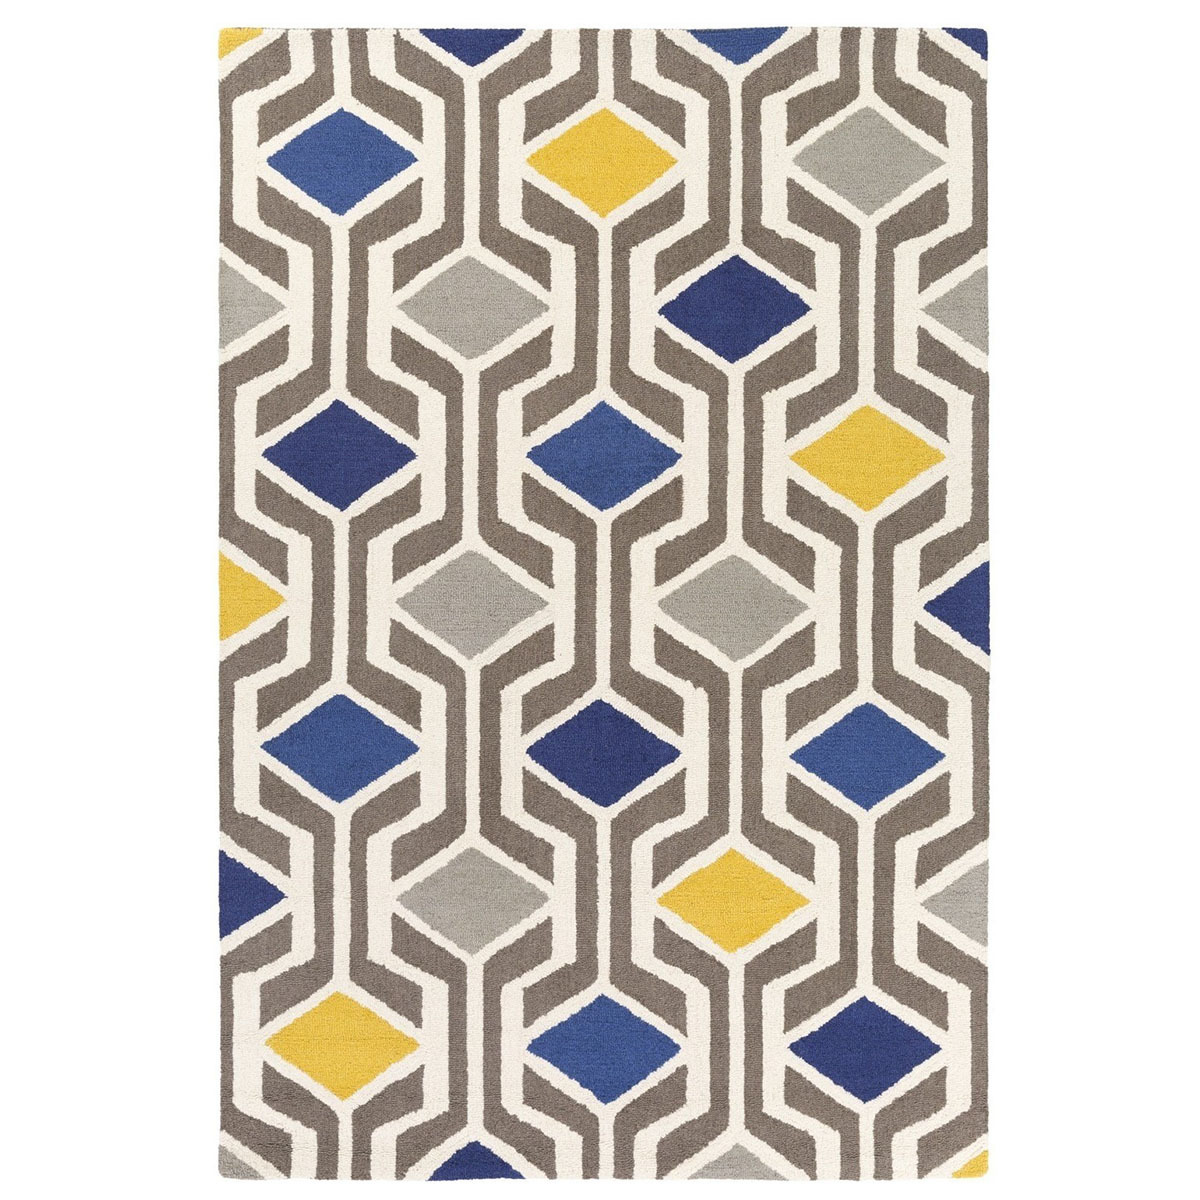 Midcentury modern rug with colorfulp- geometric shapes photo